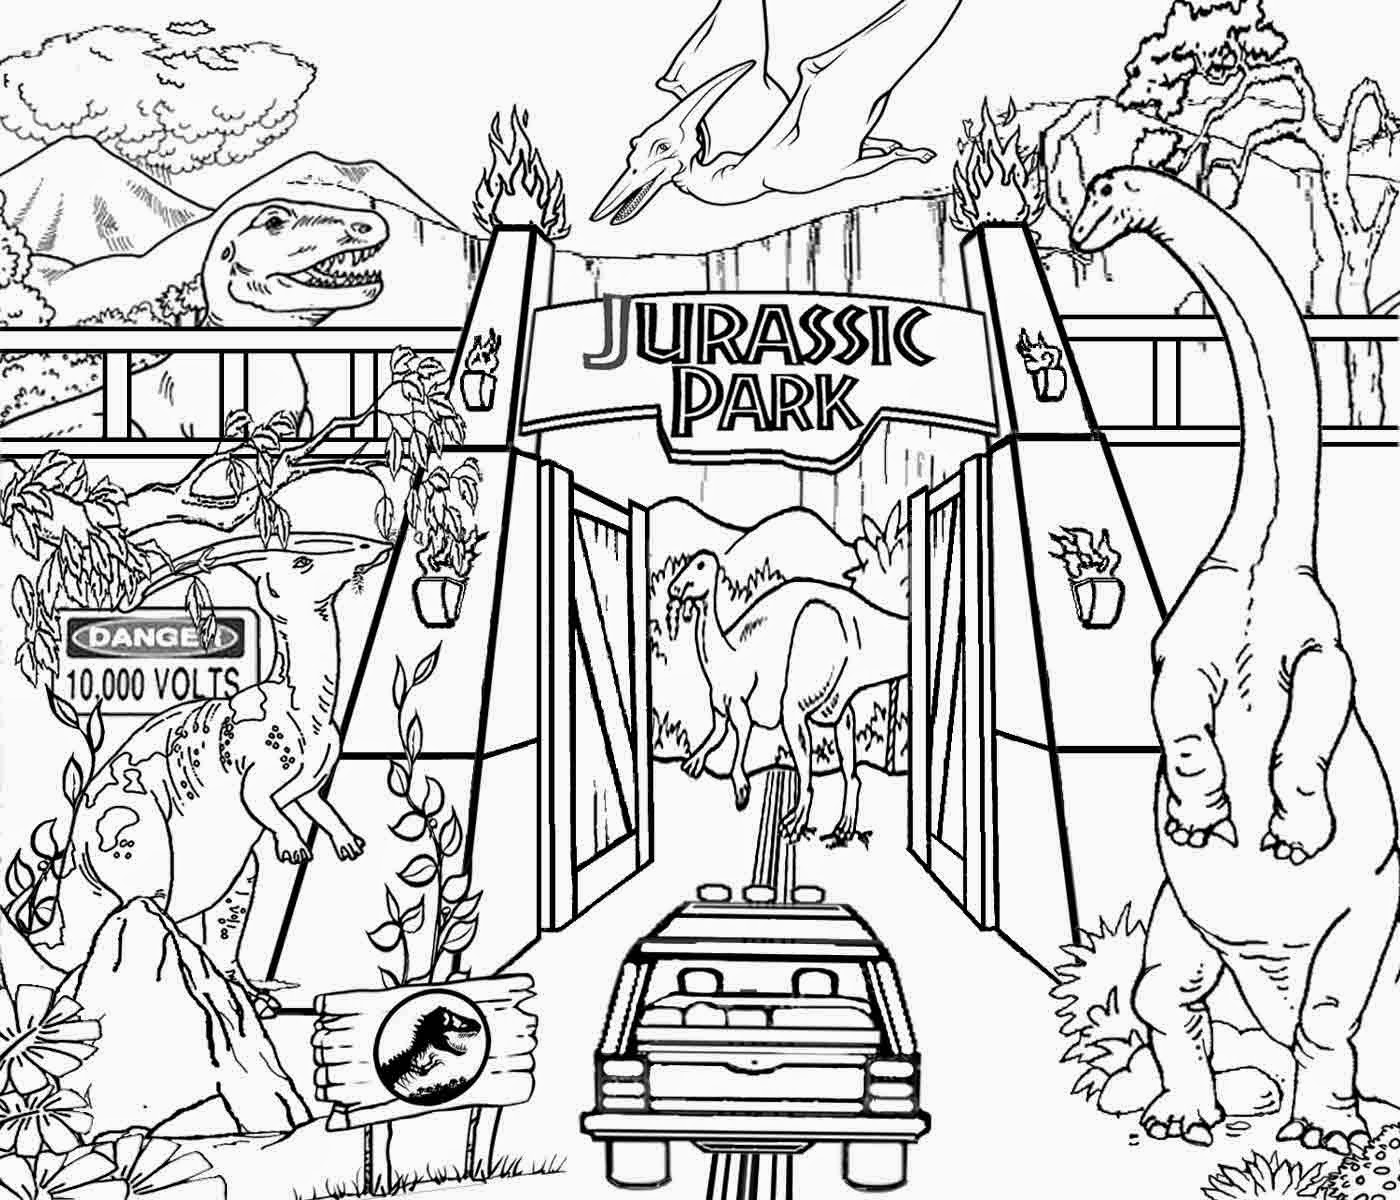 1400x1200 Jurassic Park Free Coloring Page Animals, Kids Coloring Pages